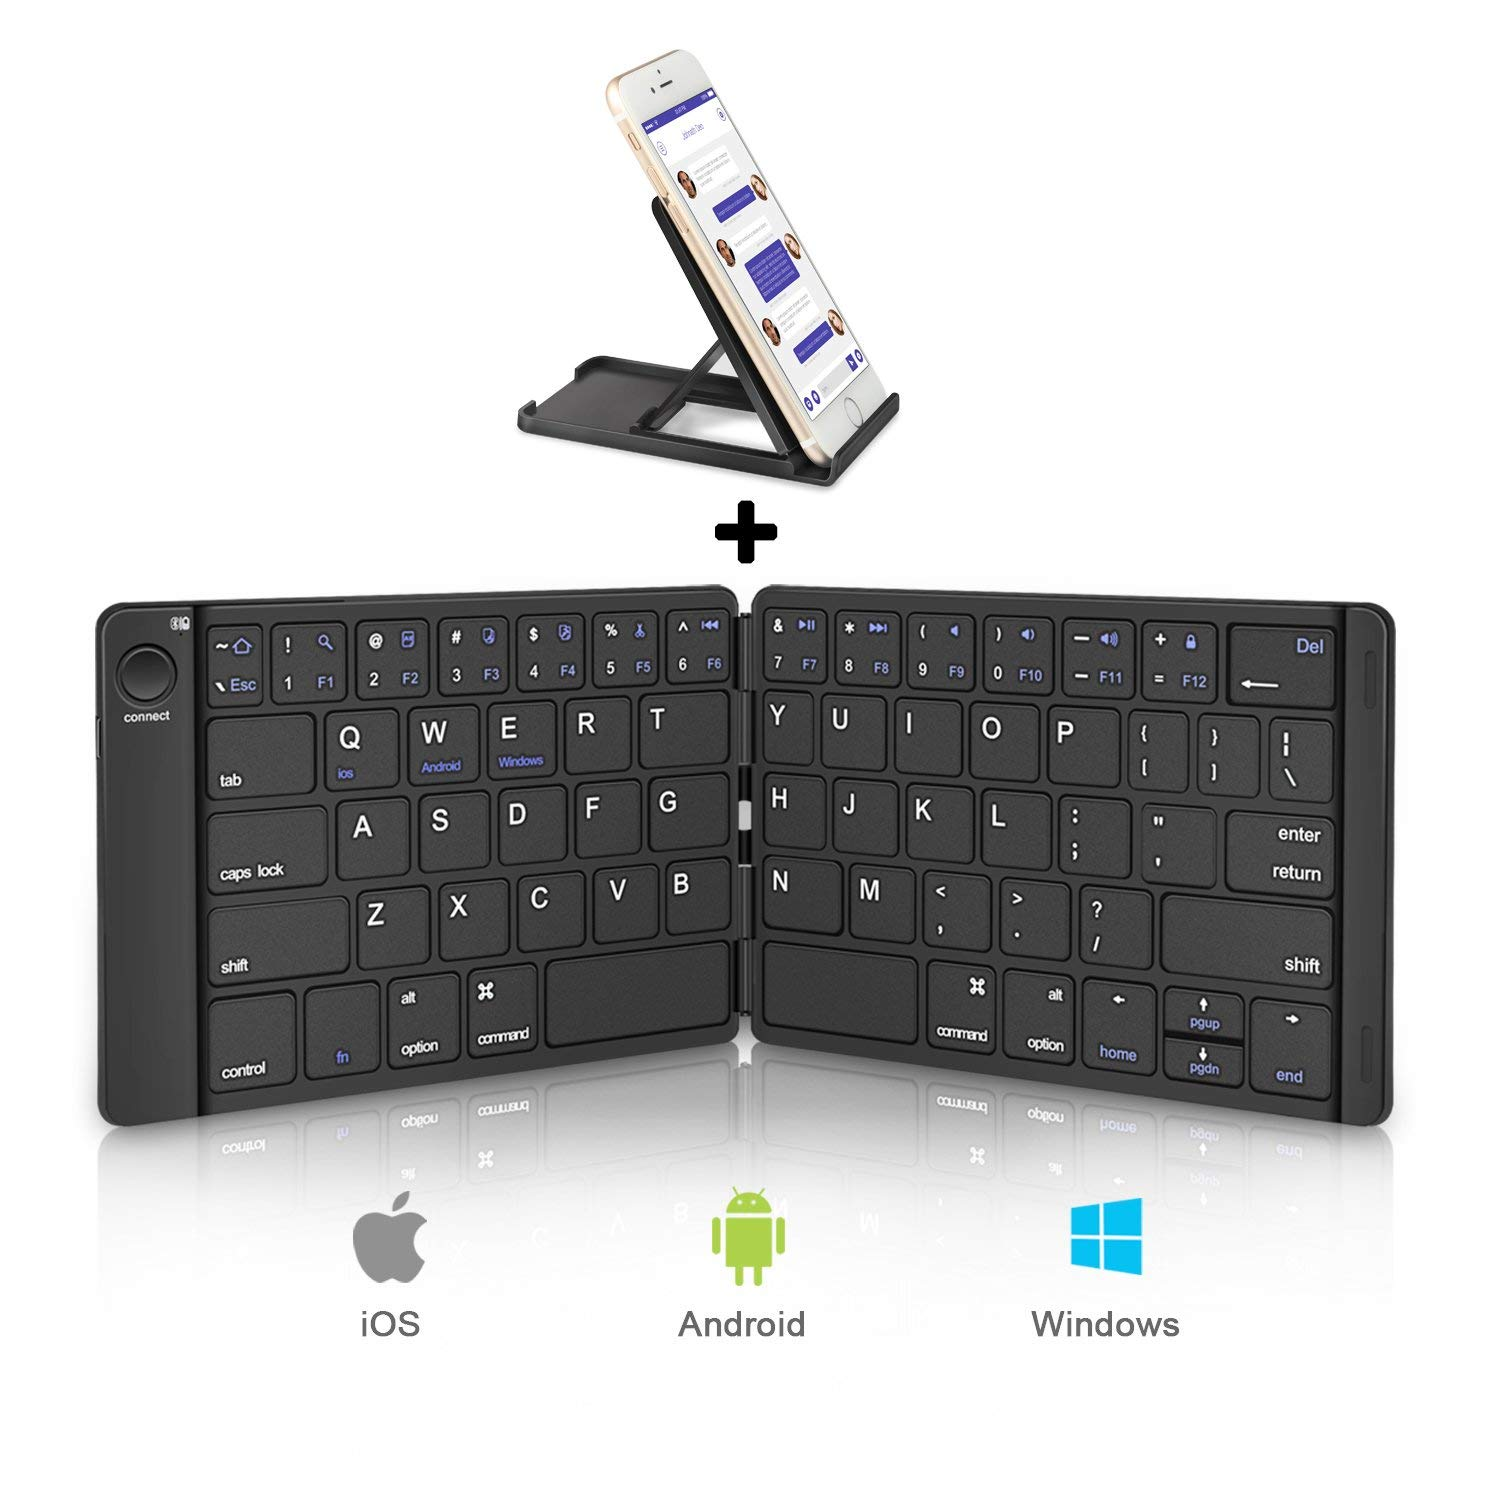 HB188D Foldable Bluetooth Keyboard Pocket Portable Universal Rechargable with Battery for iOS Android Windows PC Tablet